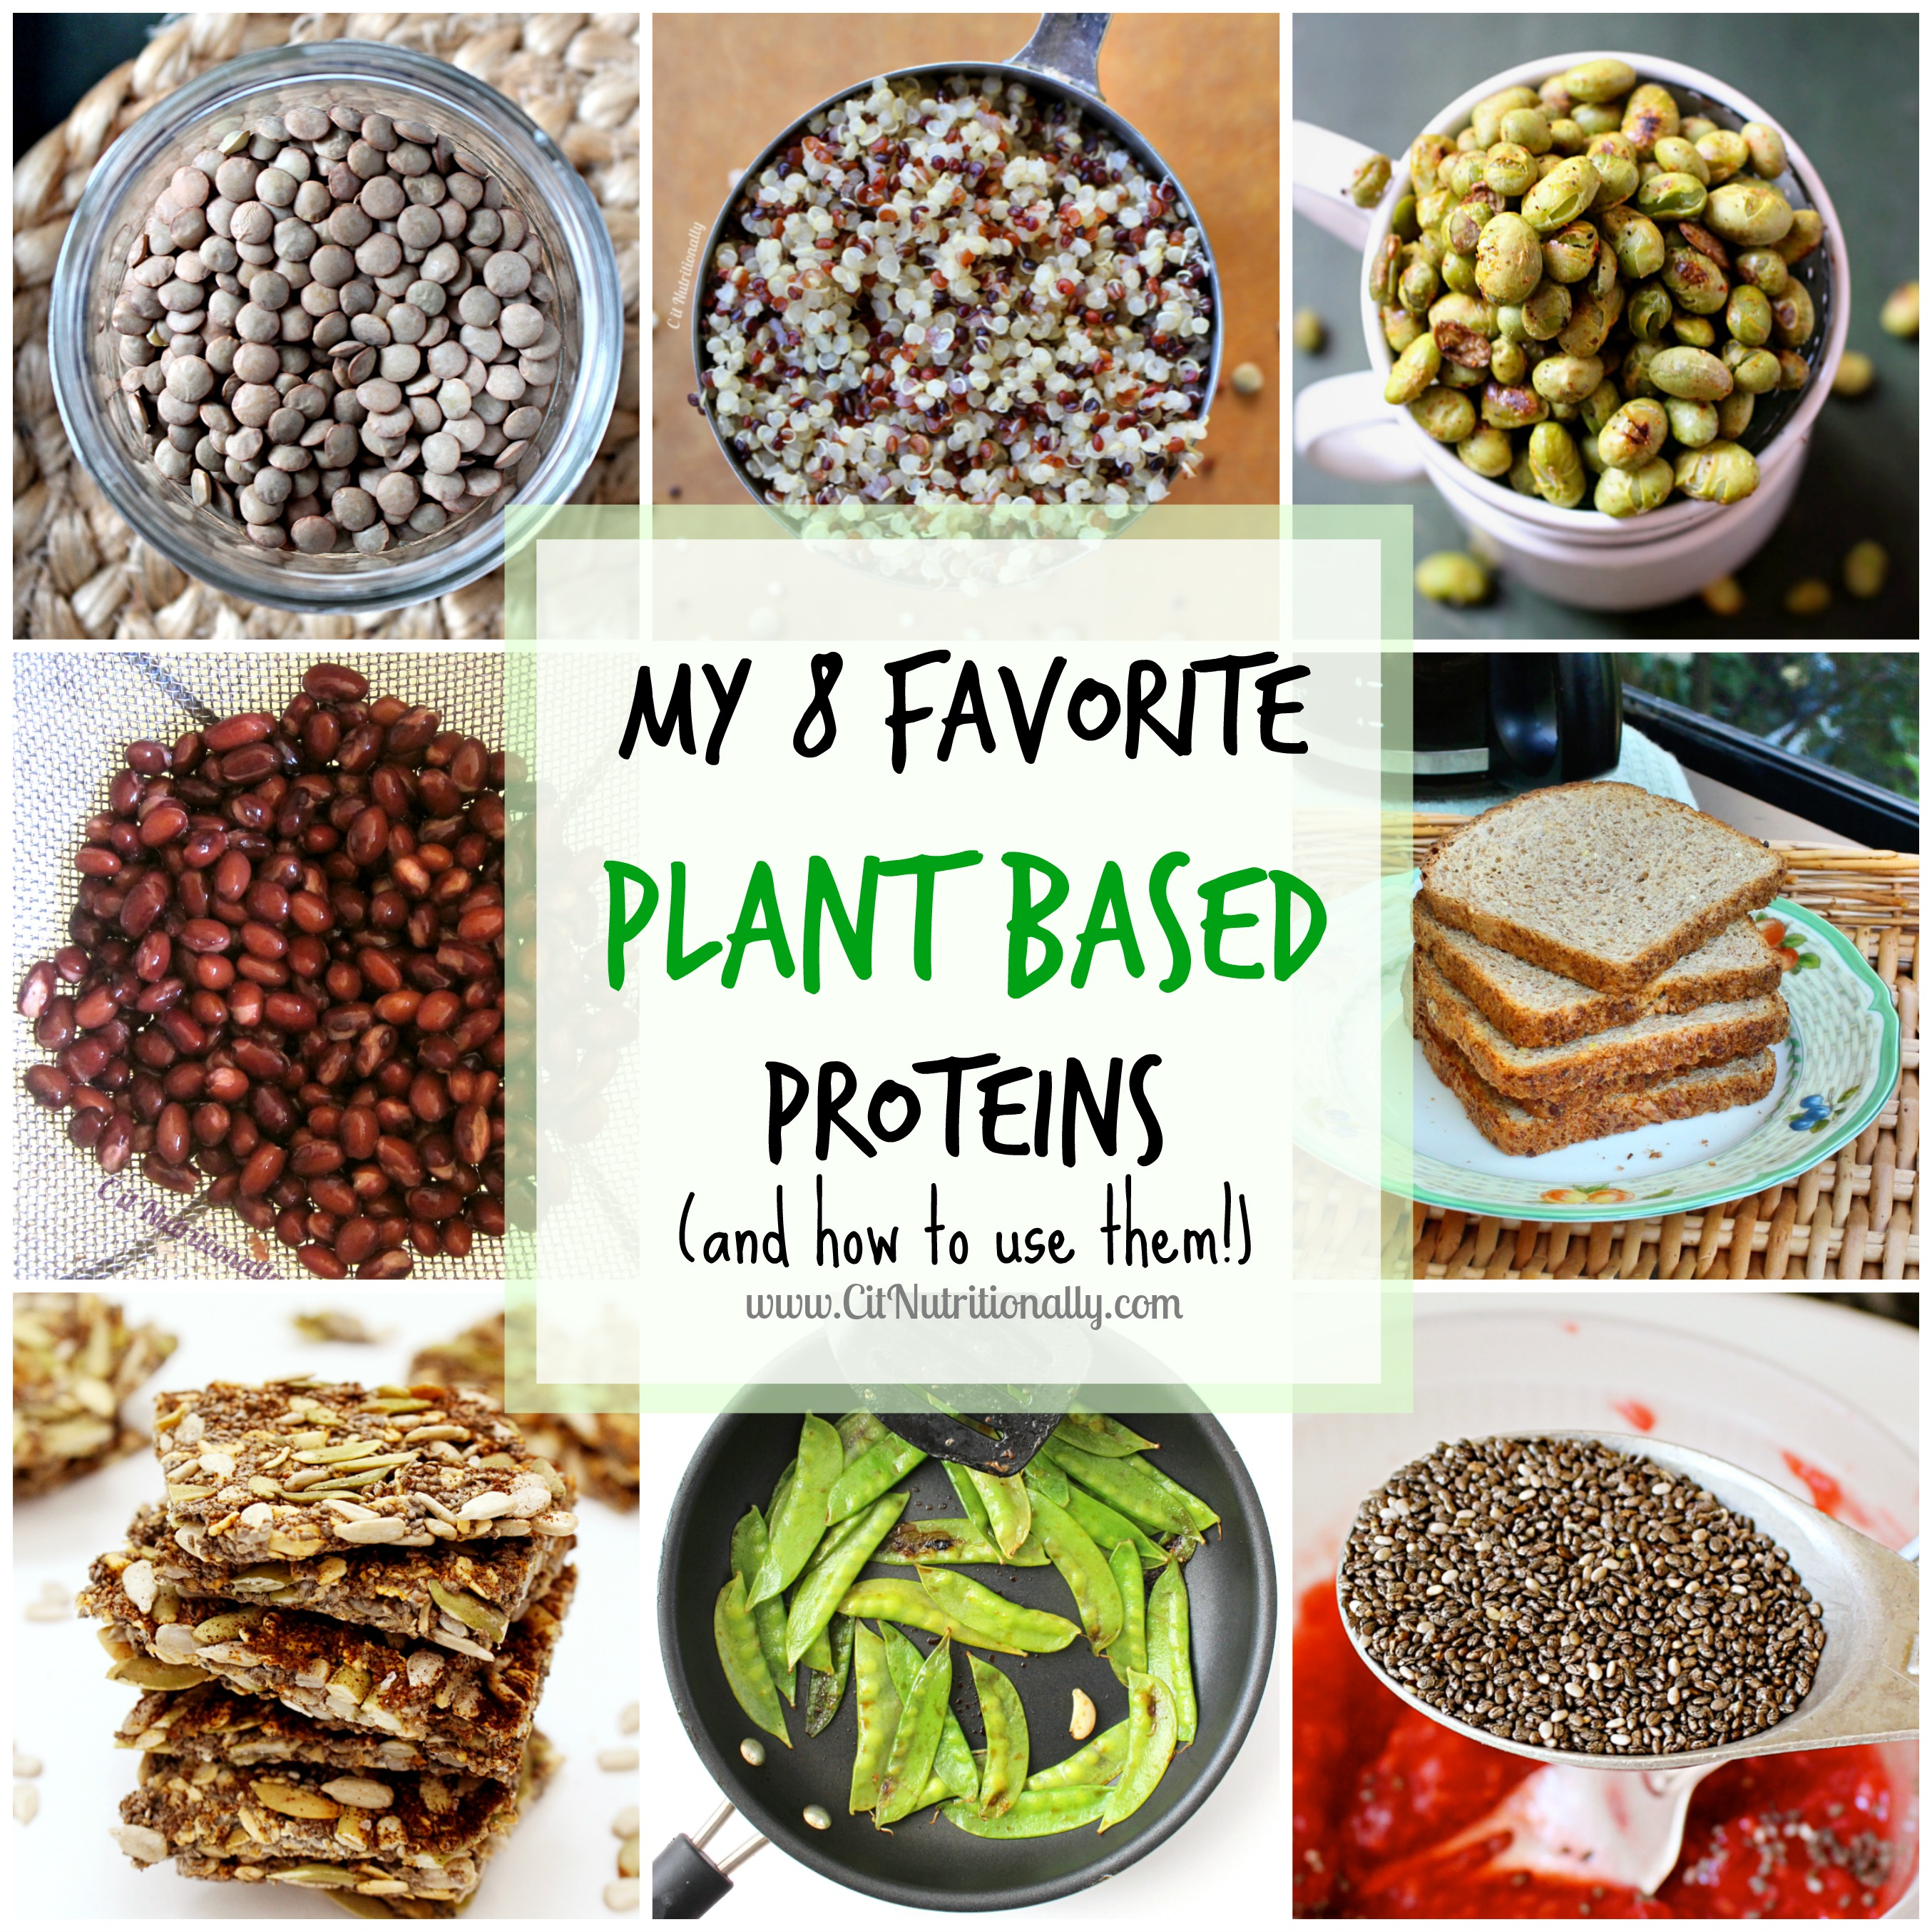 My 8 Favorite Plant Based Proteins and how to use them! | C it Nutritionally #vegan #vegetarian #MeatlessMonday #ShopWithYourHeart